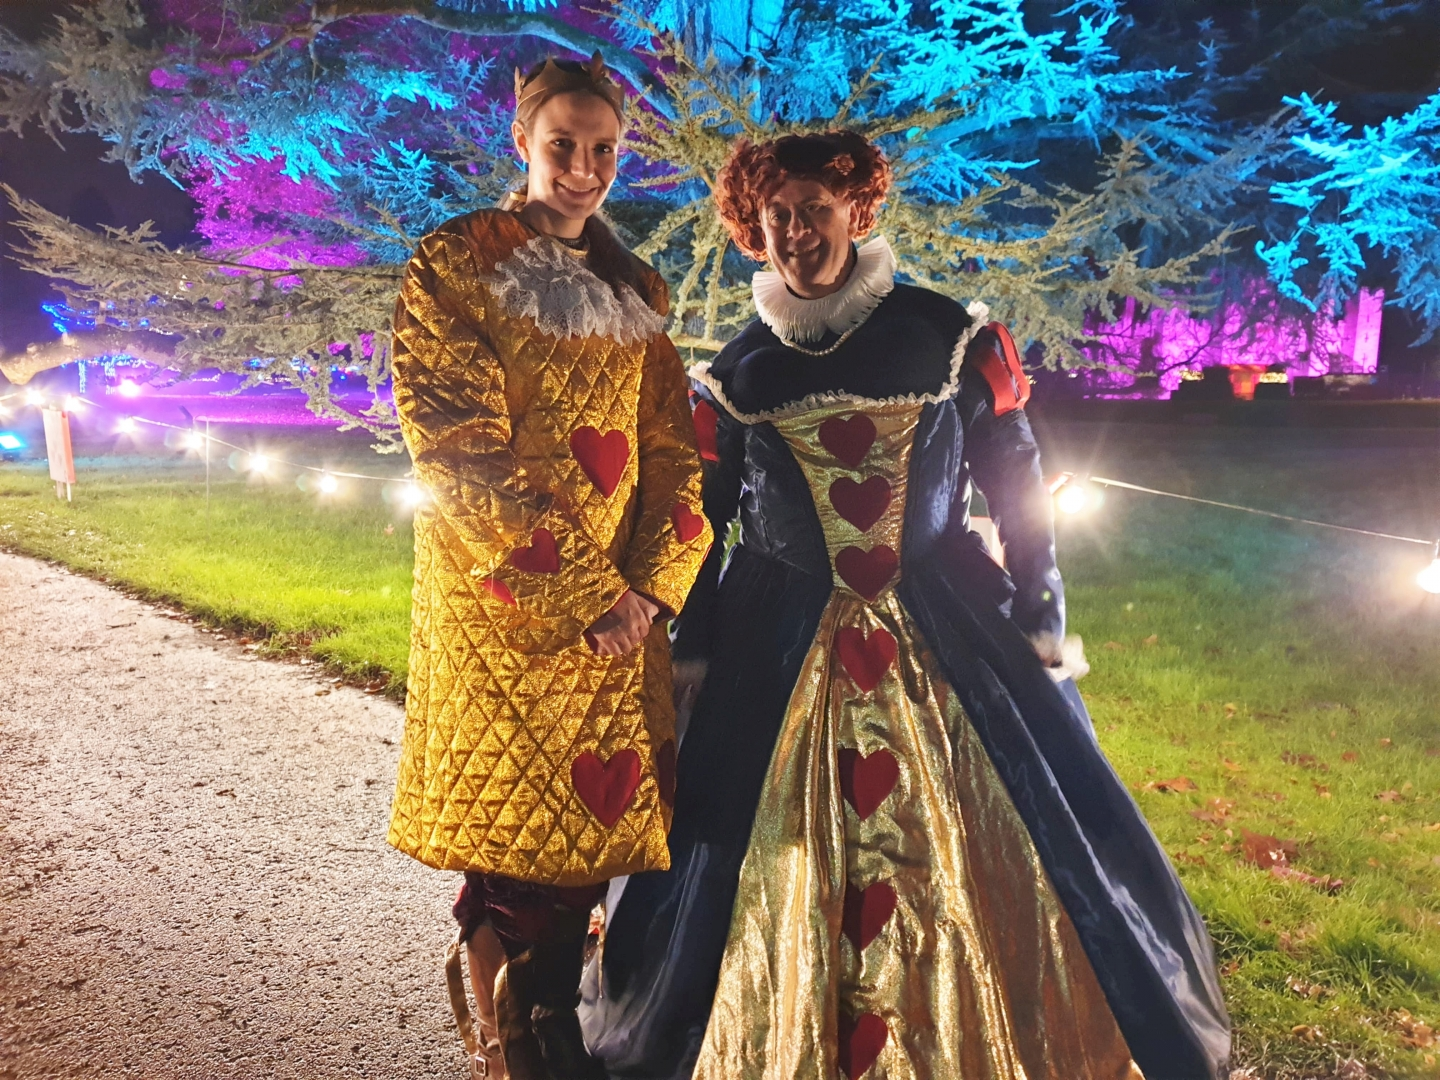 King and Queen of Hearts at Hever Castle